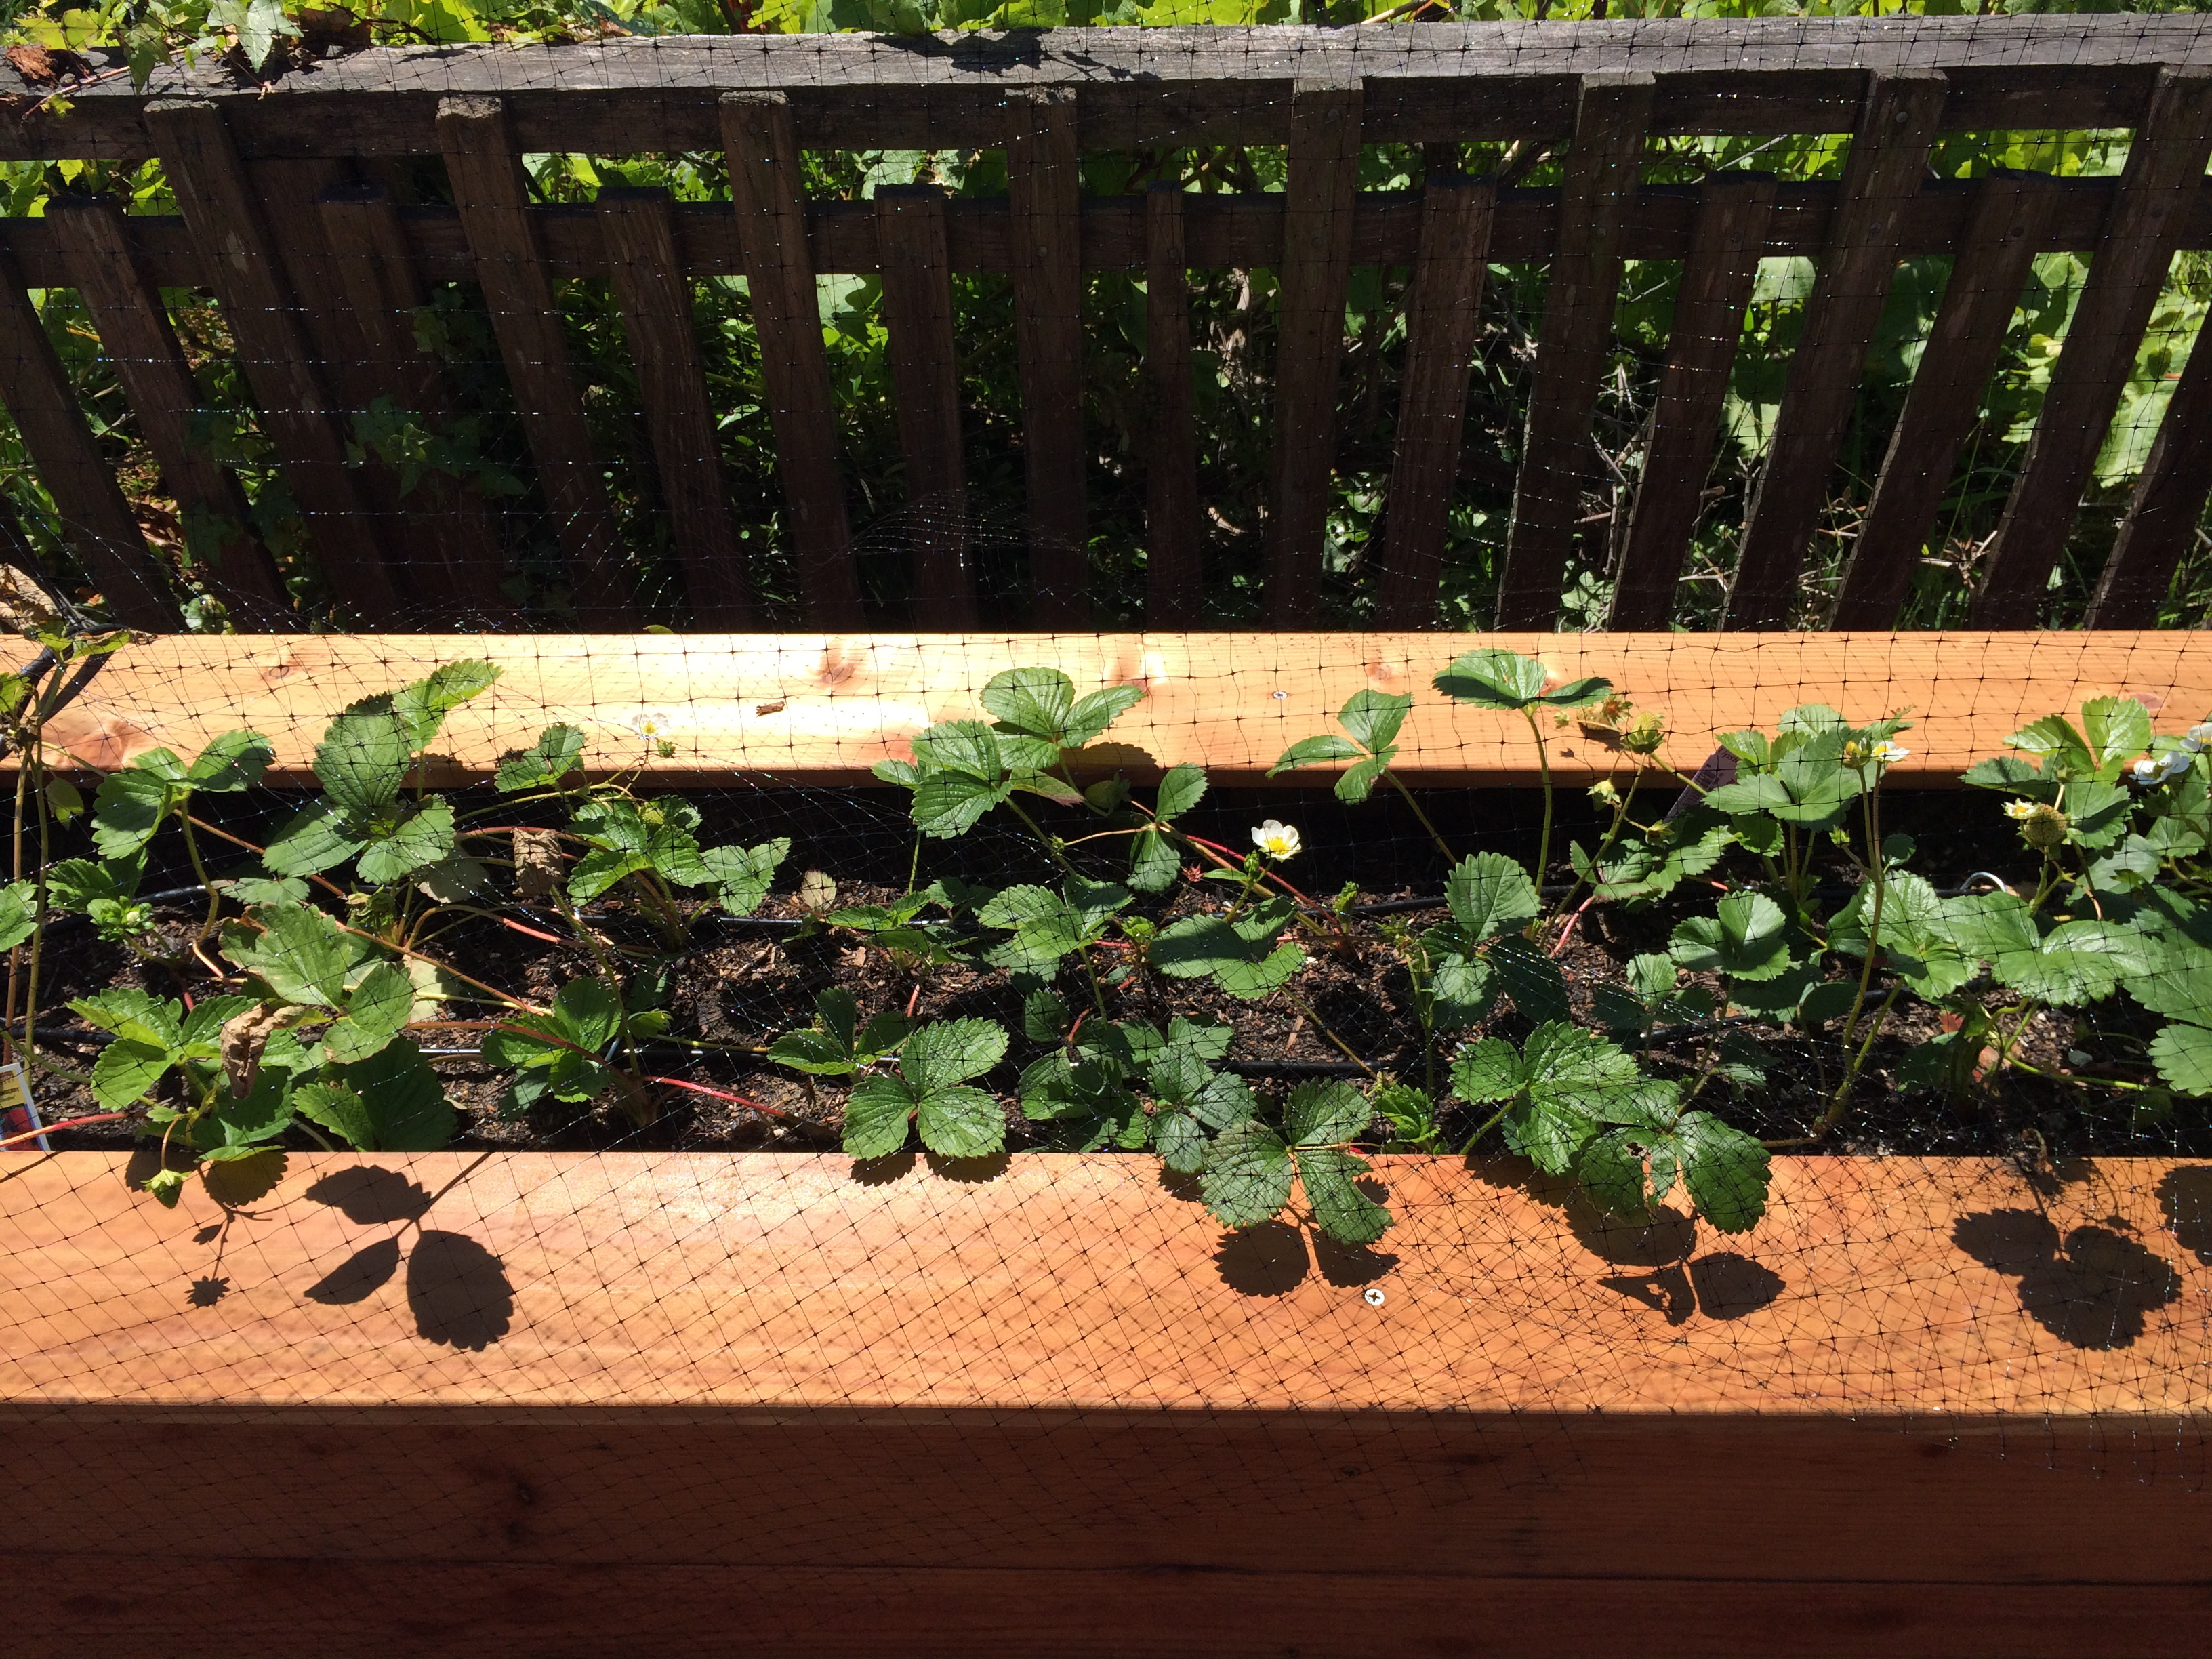 Strawberries watered via drip irrigation